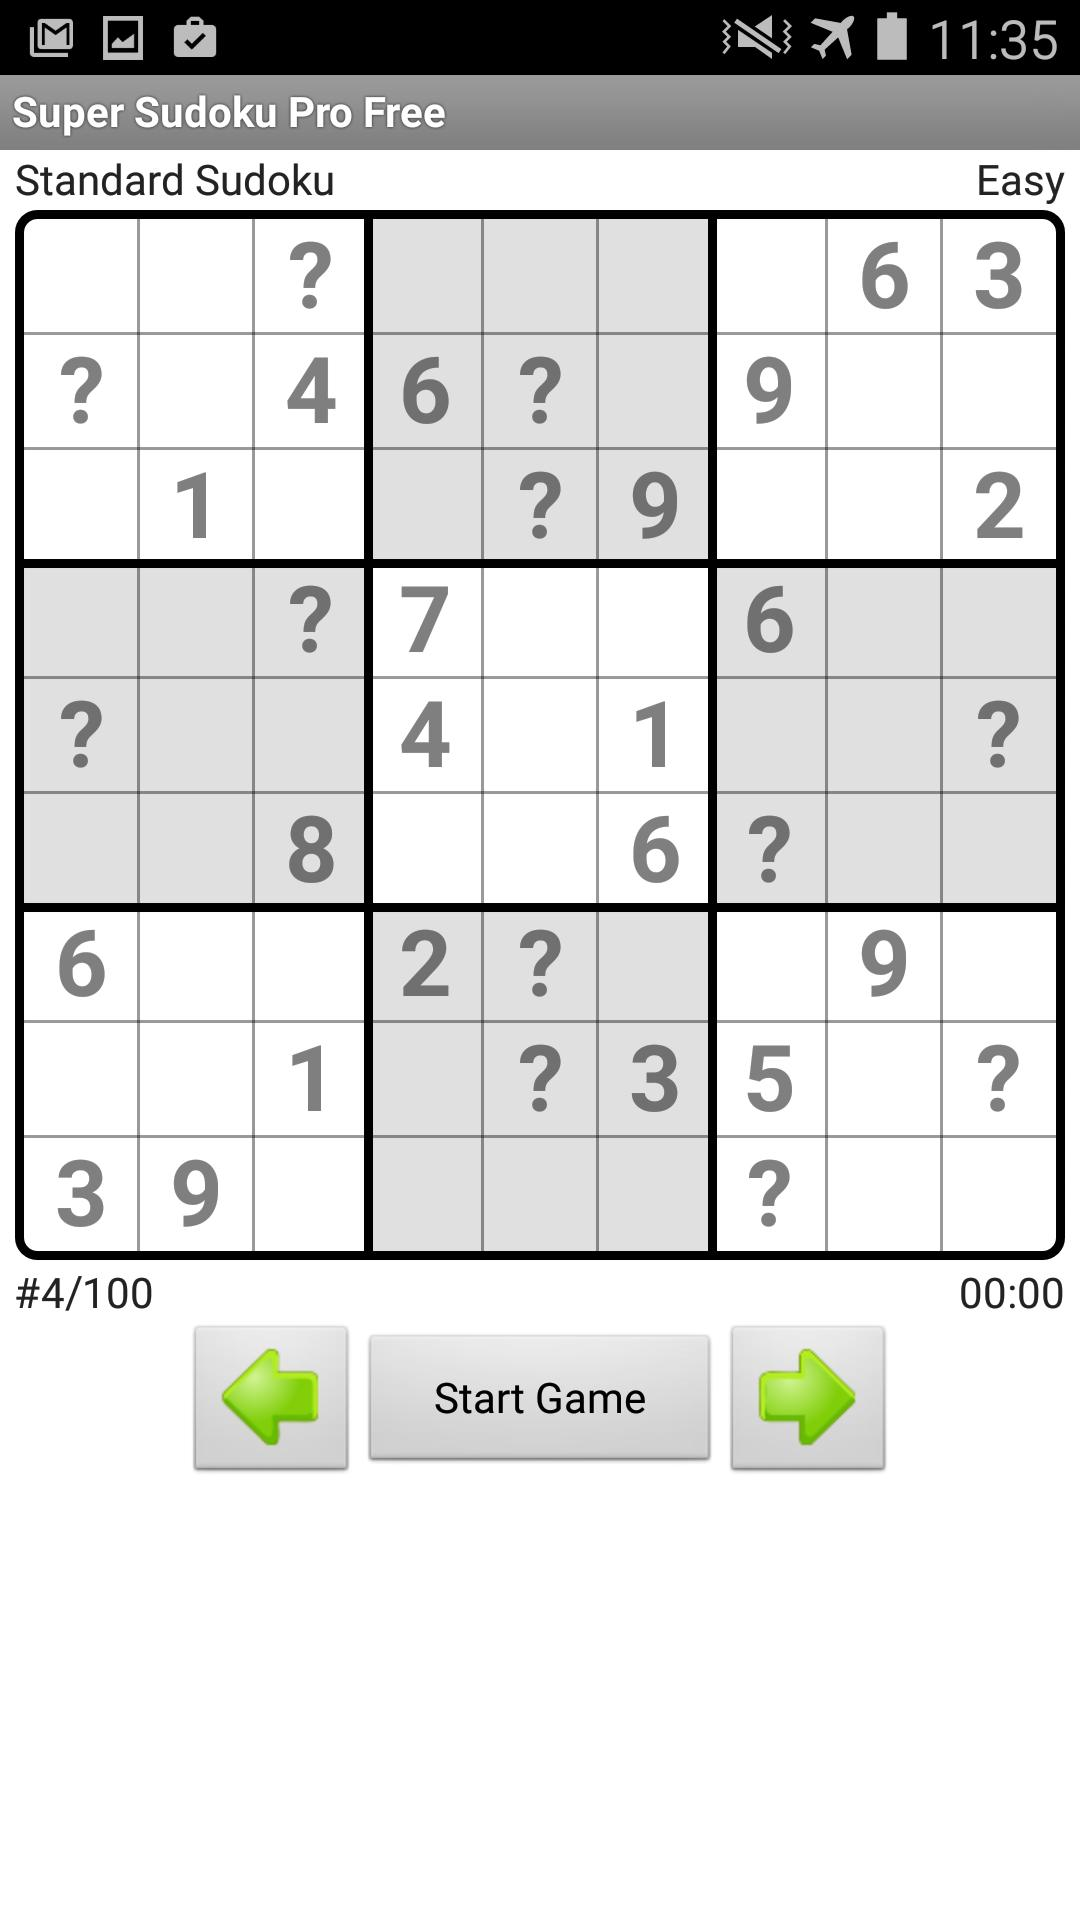 Super Sudoku Pro Free for Android - APK Download